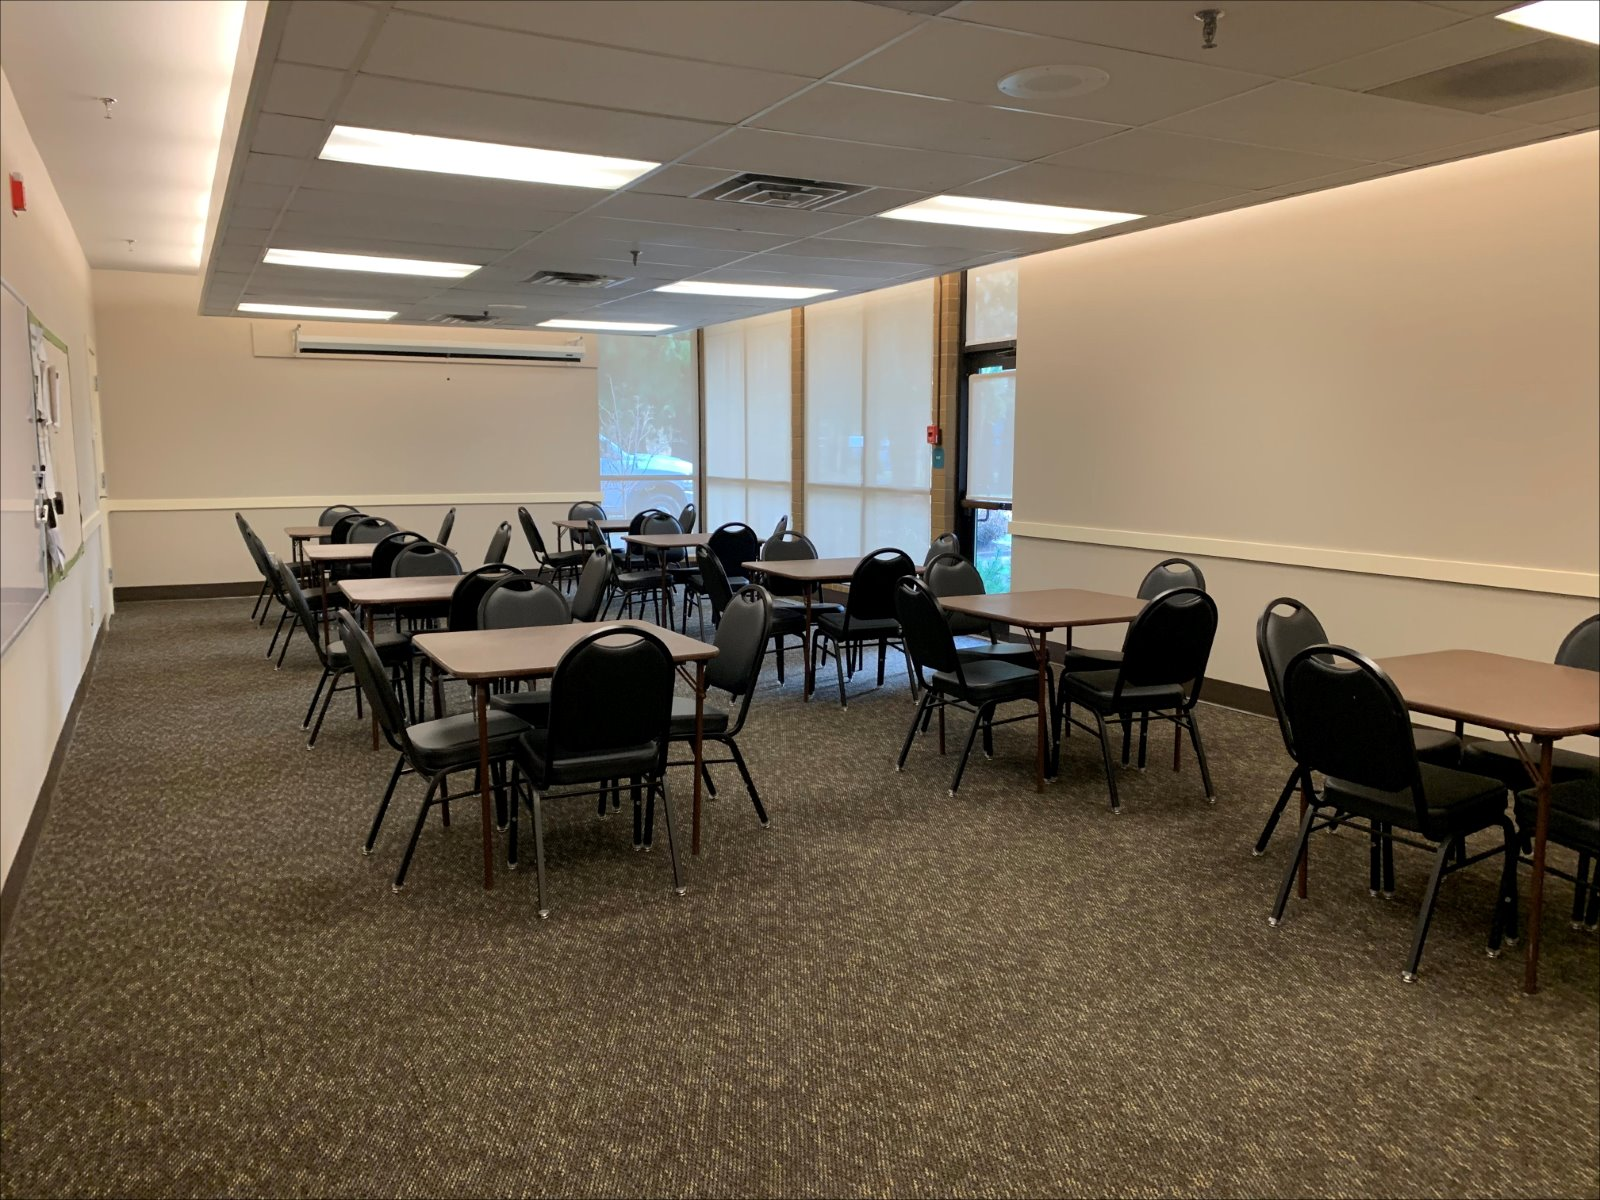 Photo of Meeting Room D